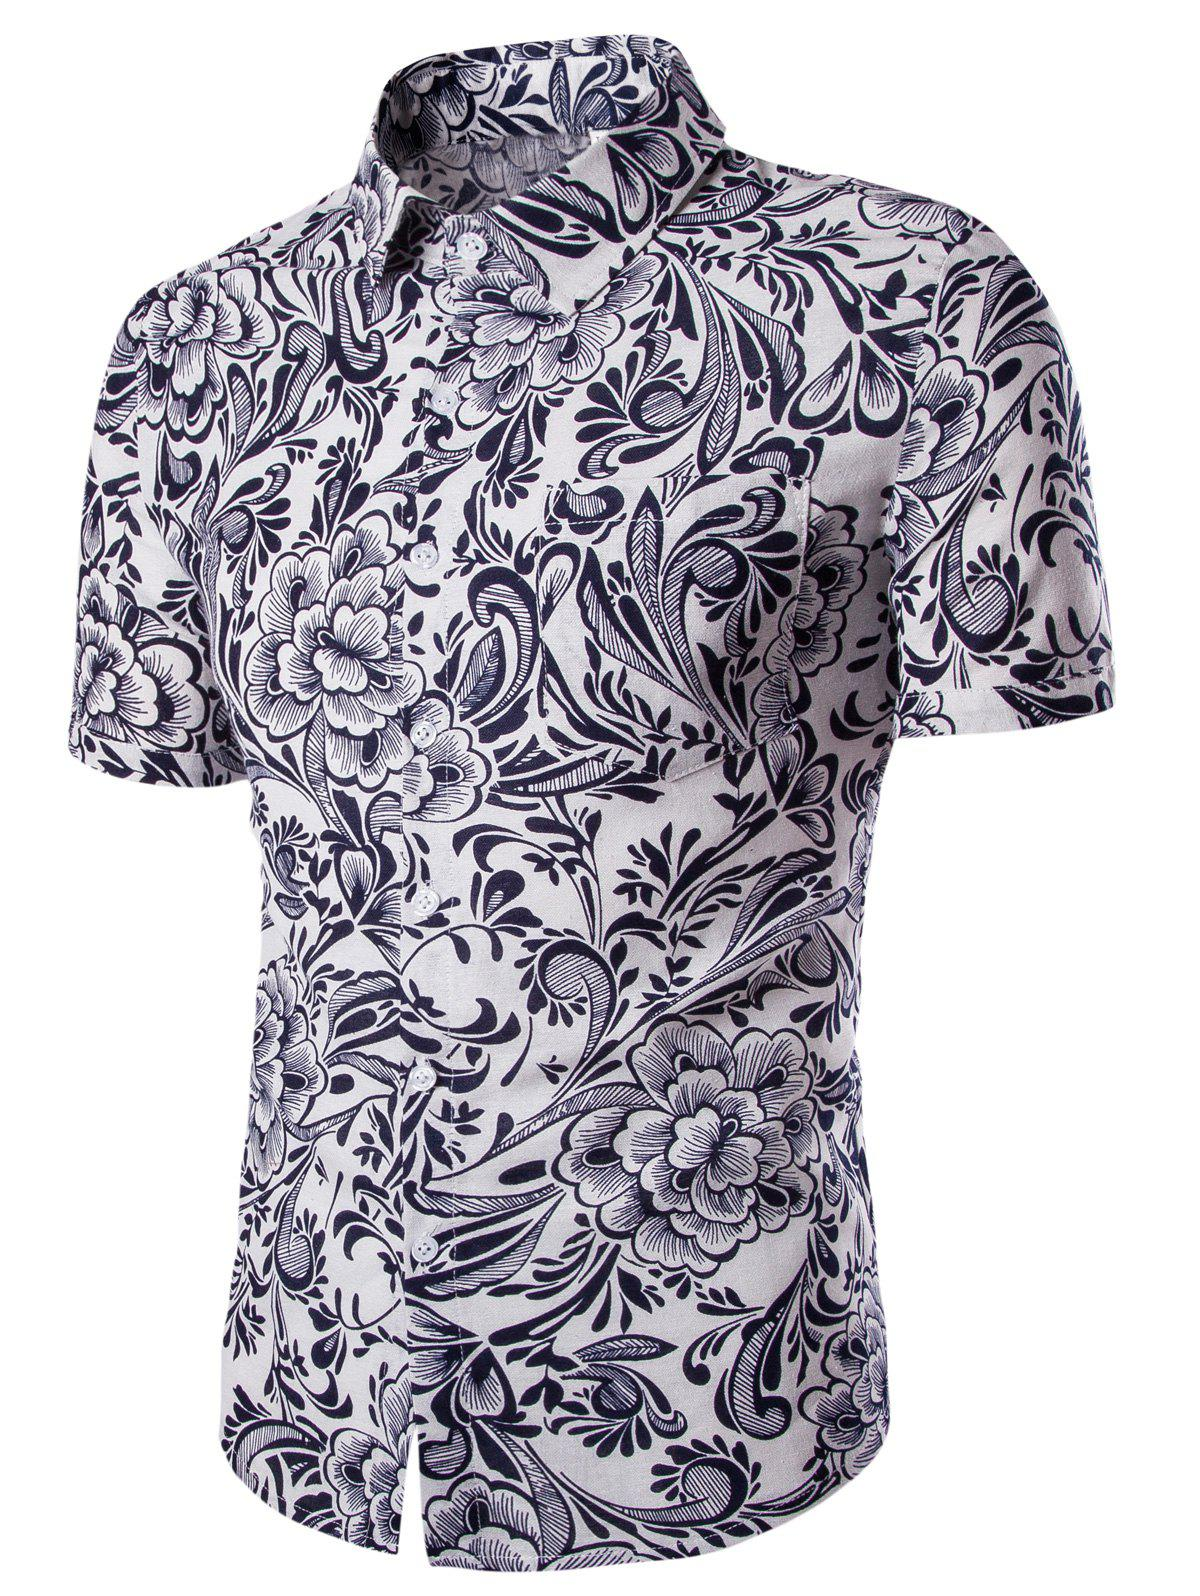 Casual Flower Printing Short Sleeves Men's Shirts - WHITE L